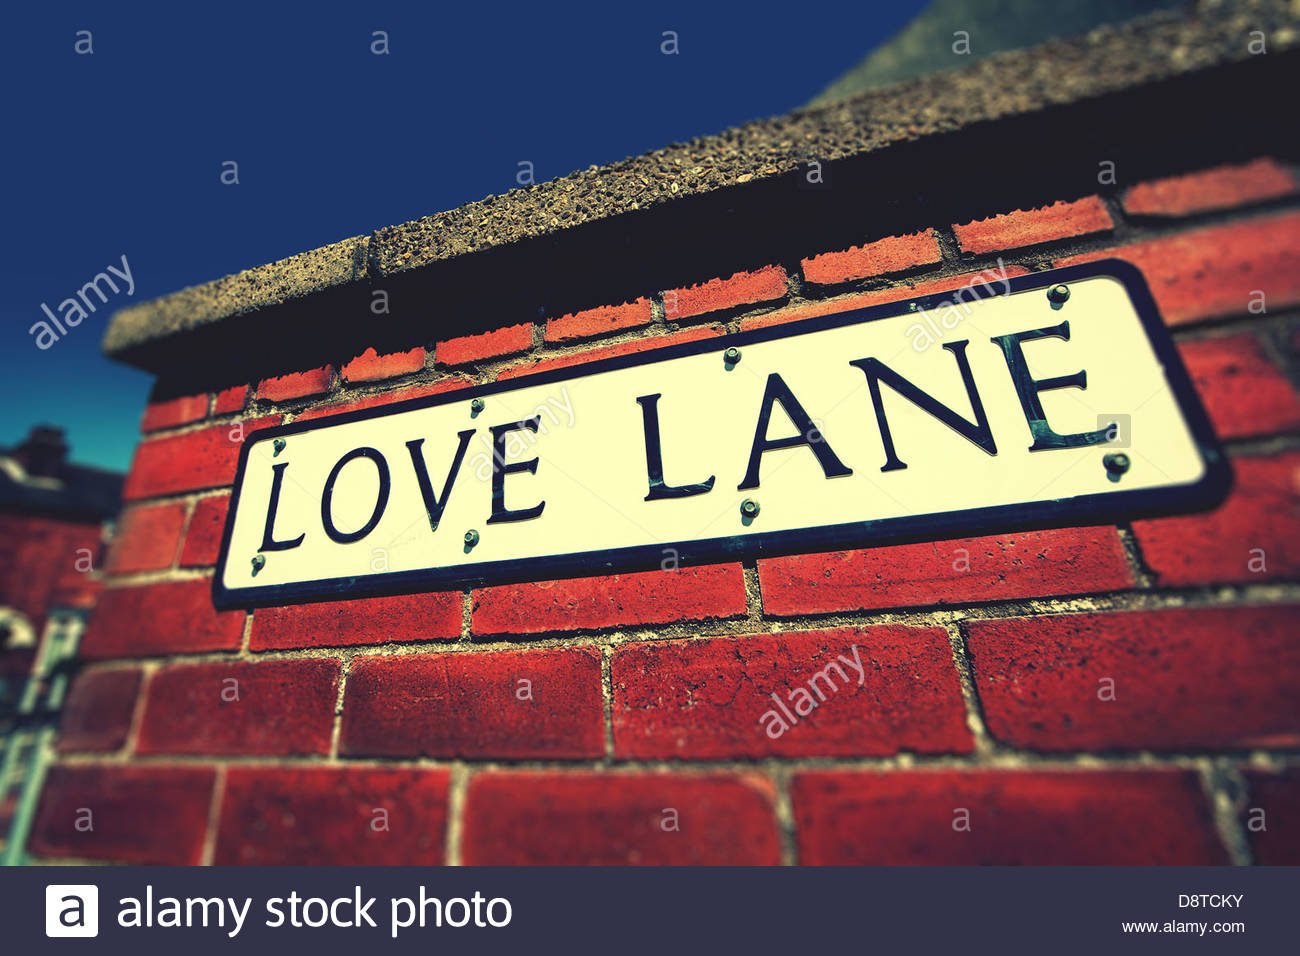 Love Lane firmar en la paredFoto de stock